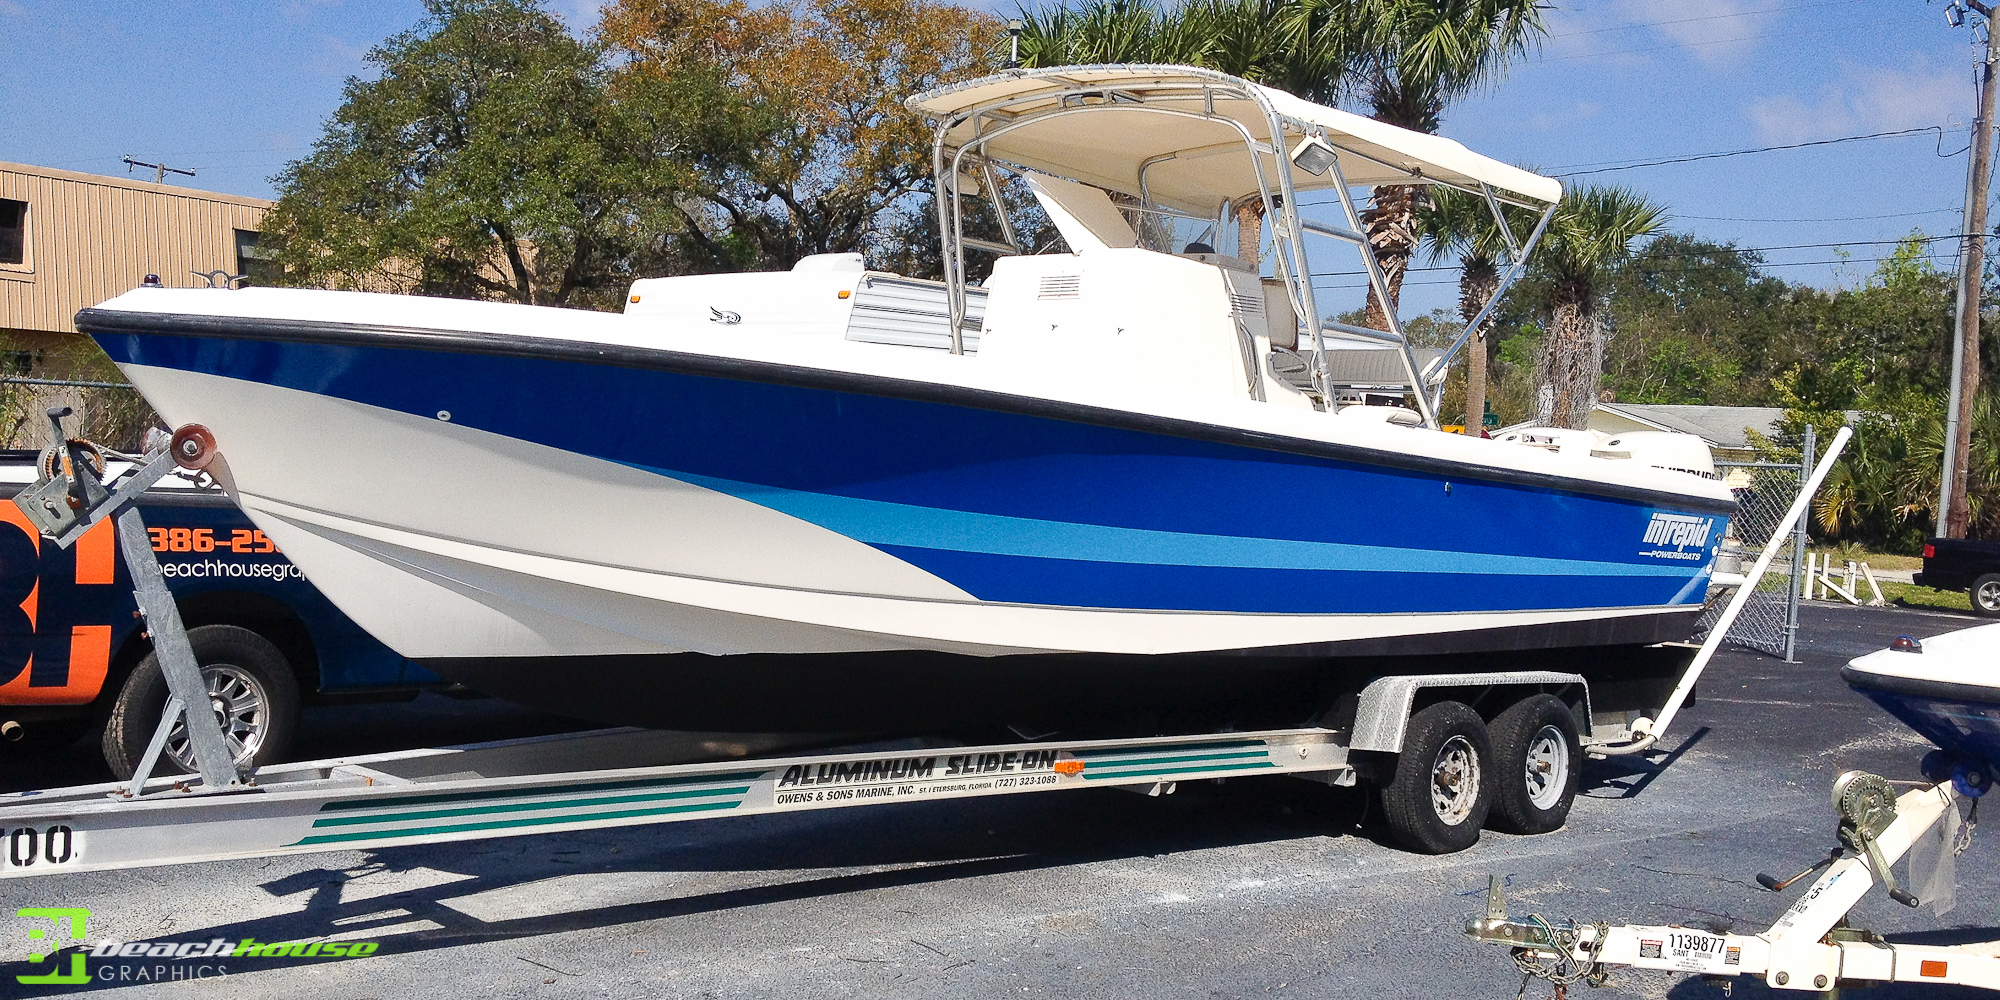 Boat Wrap Custom Vehicle Wraps - Boat decal graphics